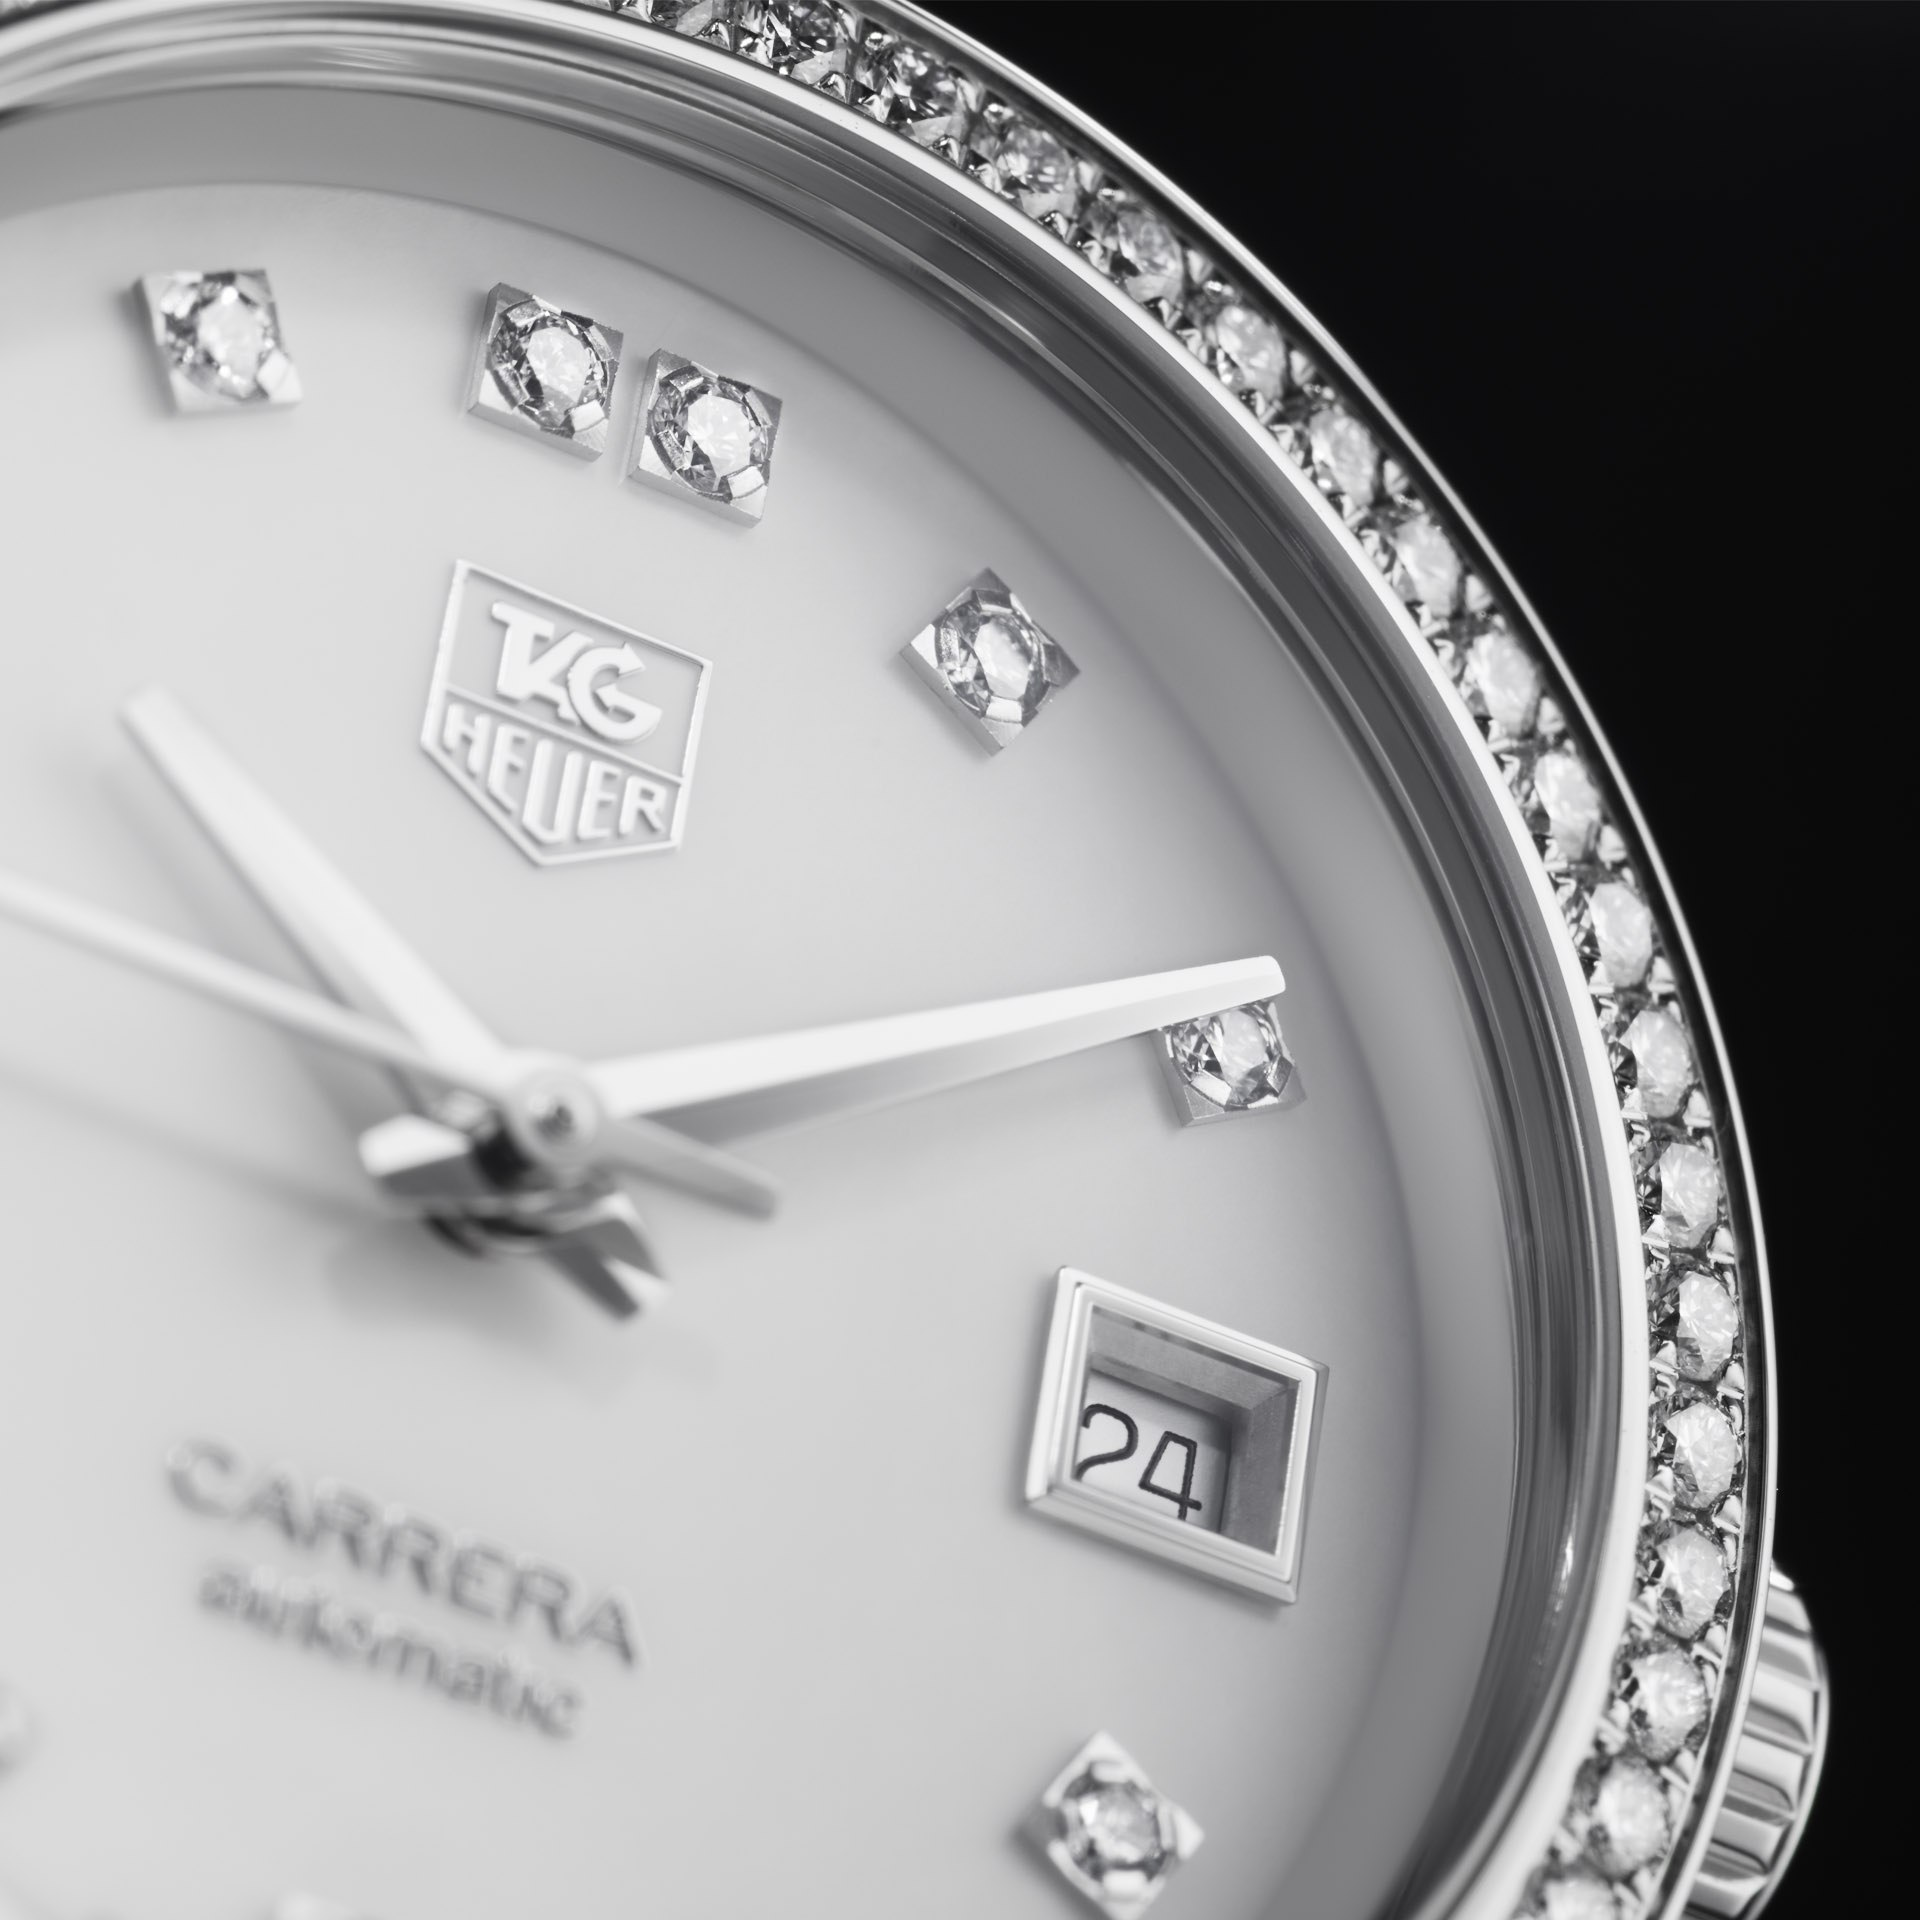 A TAG Heuer ladies Carrera watch